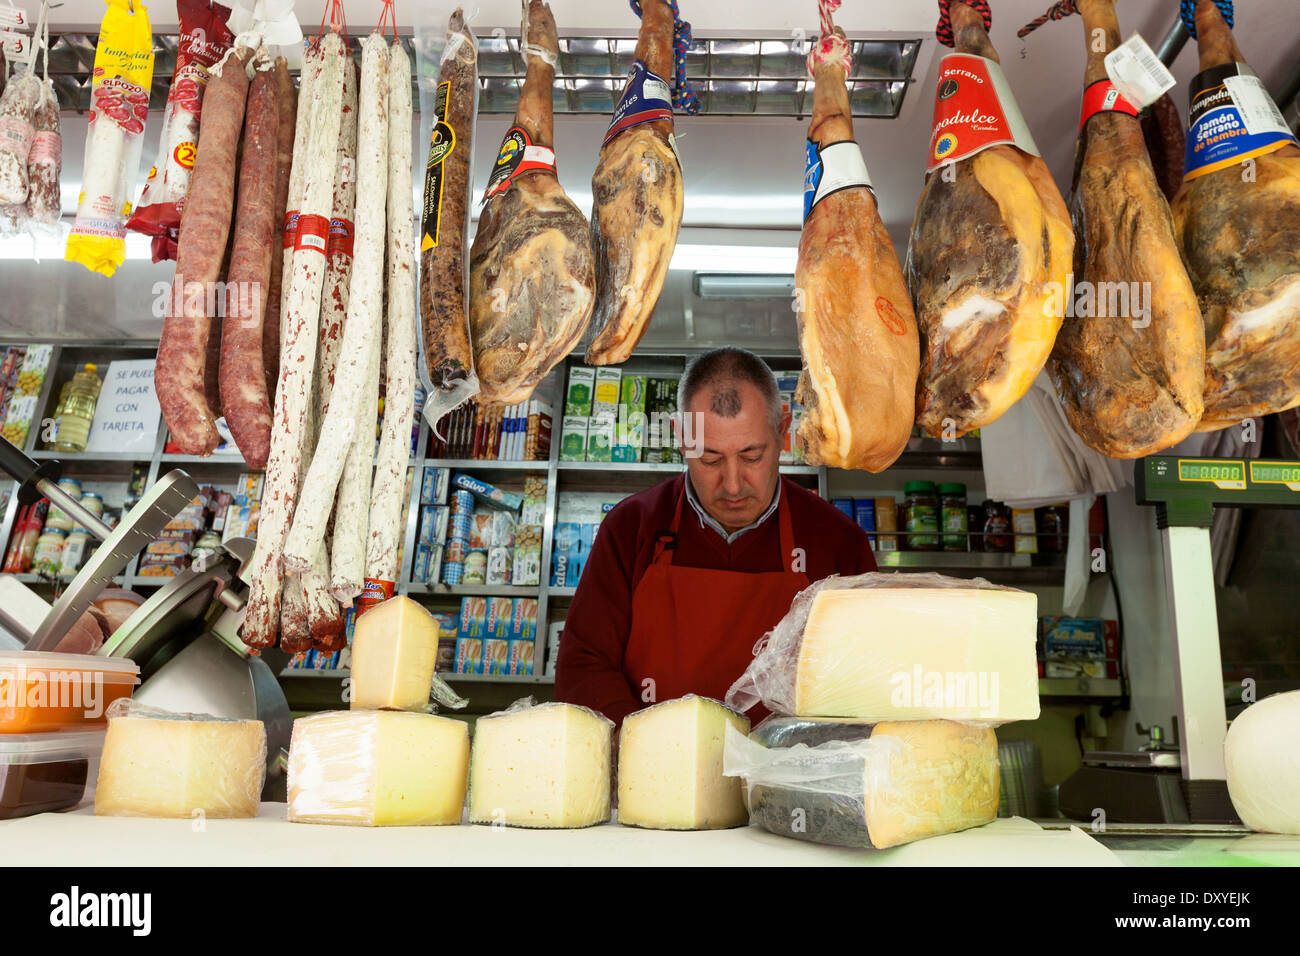 Food market Spain; A butcher selling meat and cheese in his food stall, Turre market, Almeria Andalusia Spain Europe - Stock Image